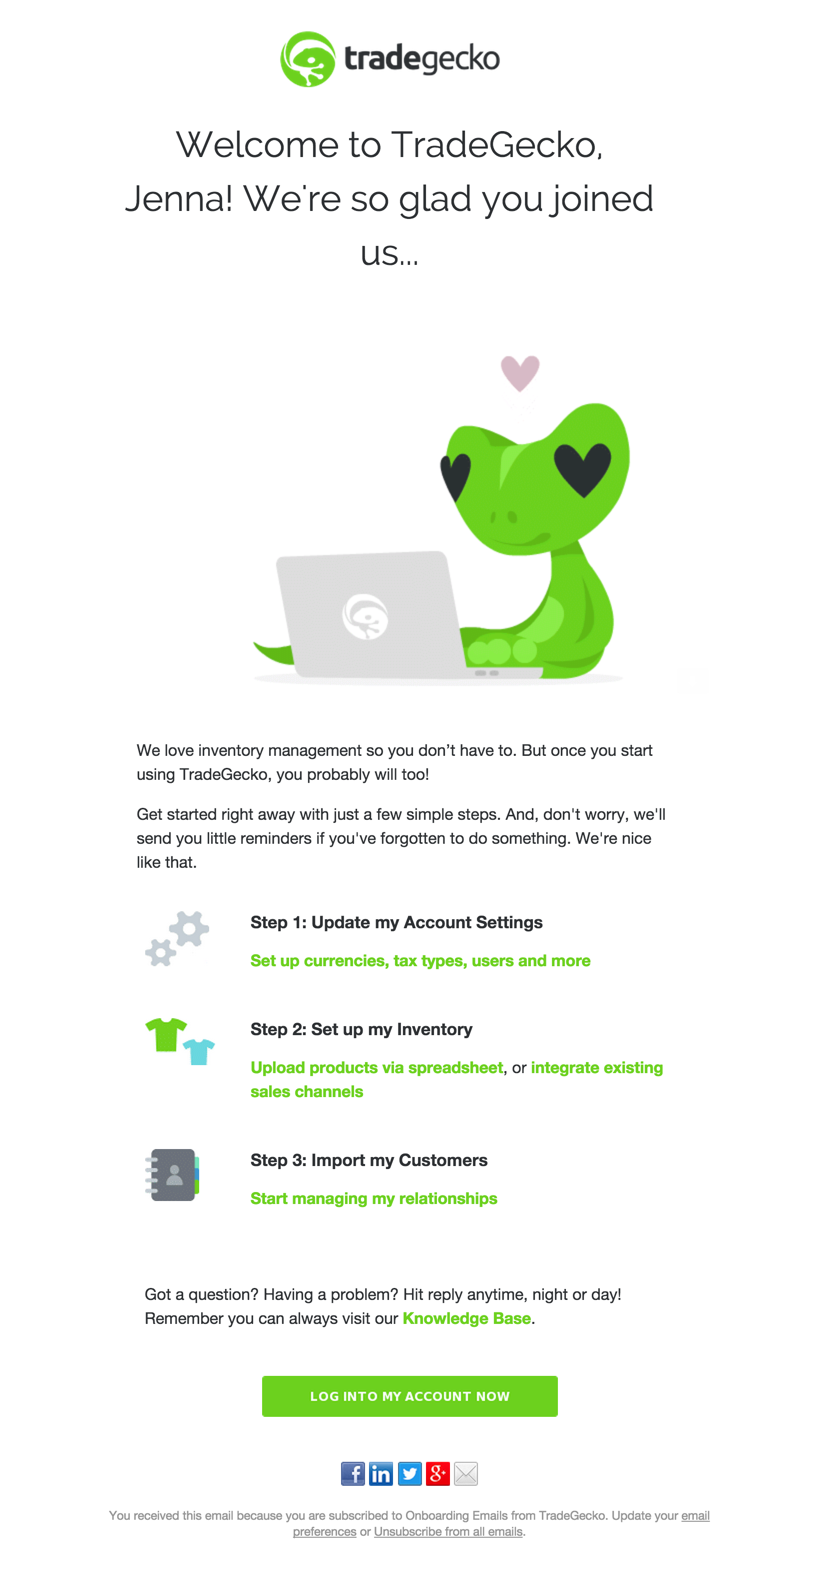 gecko-welcome-email